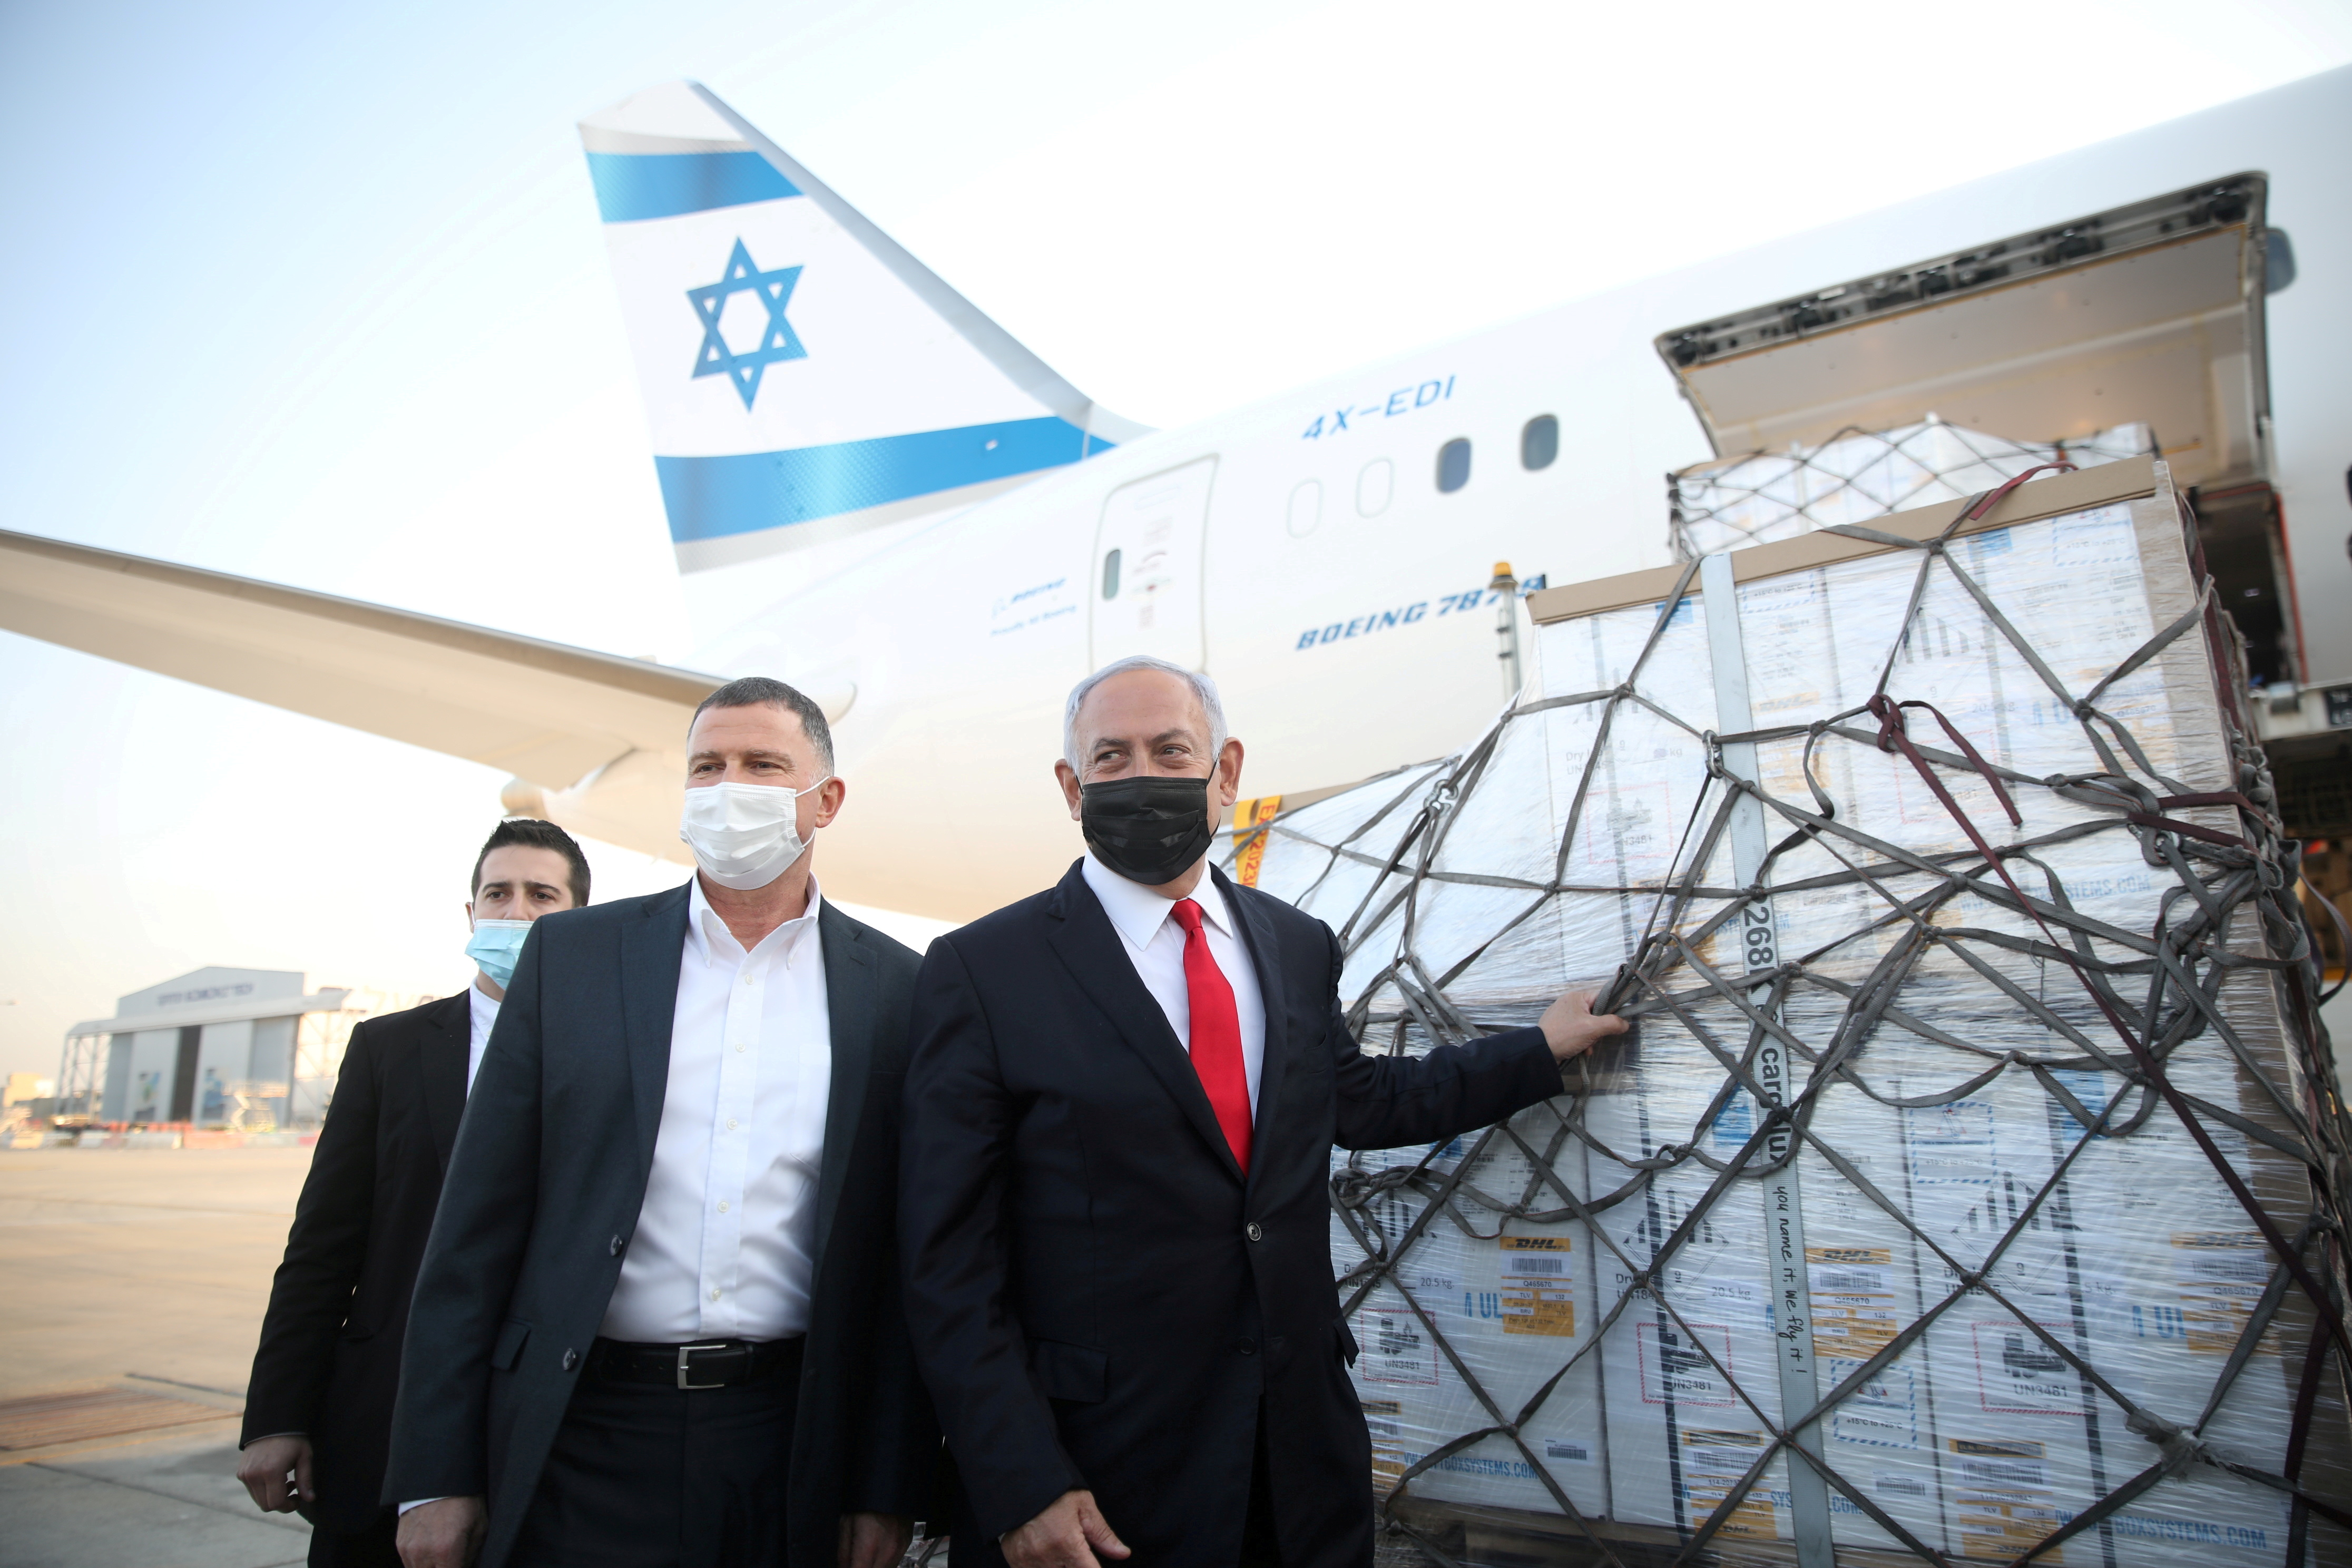 Israel Prime Minister Benjamin Netanyahu and Health Minister Yuli Edelstein attend the arrival of a plane with a shipment of Pfizer-BioNTech coronavirus disease (COVID-19) vaccines, at Ben Gurion airport, near the city of Lod, Israel, January 10, 2021. Motti Millrod/Pool via REUTERS